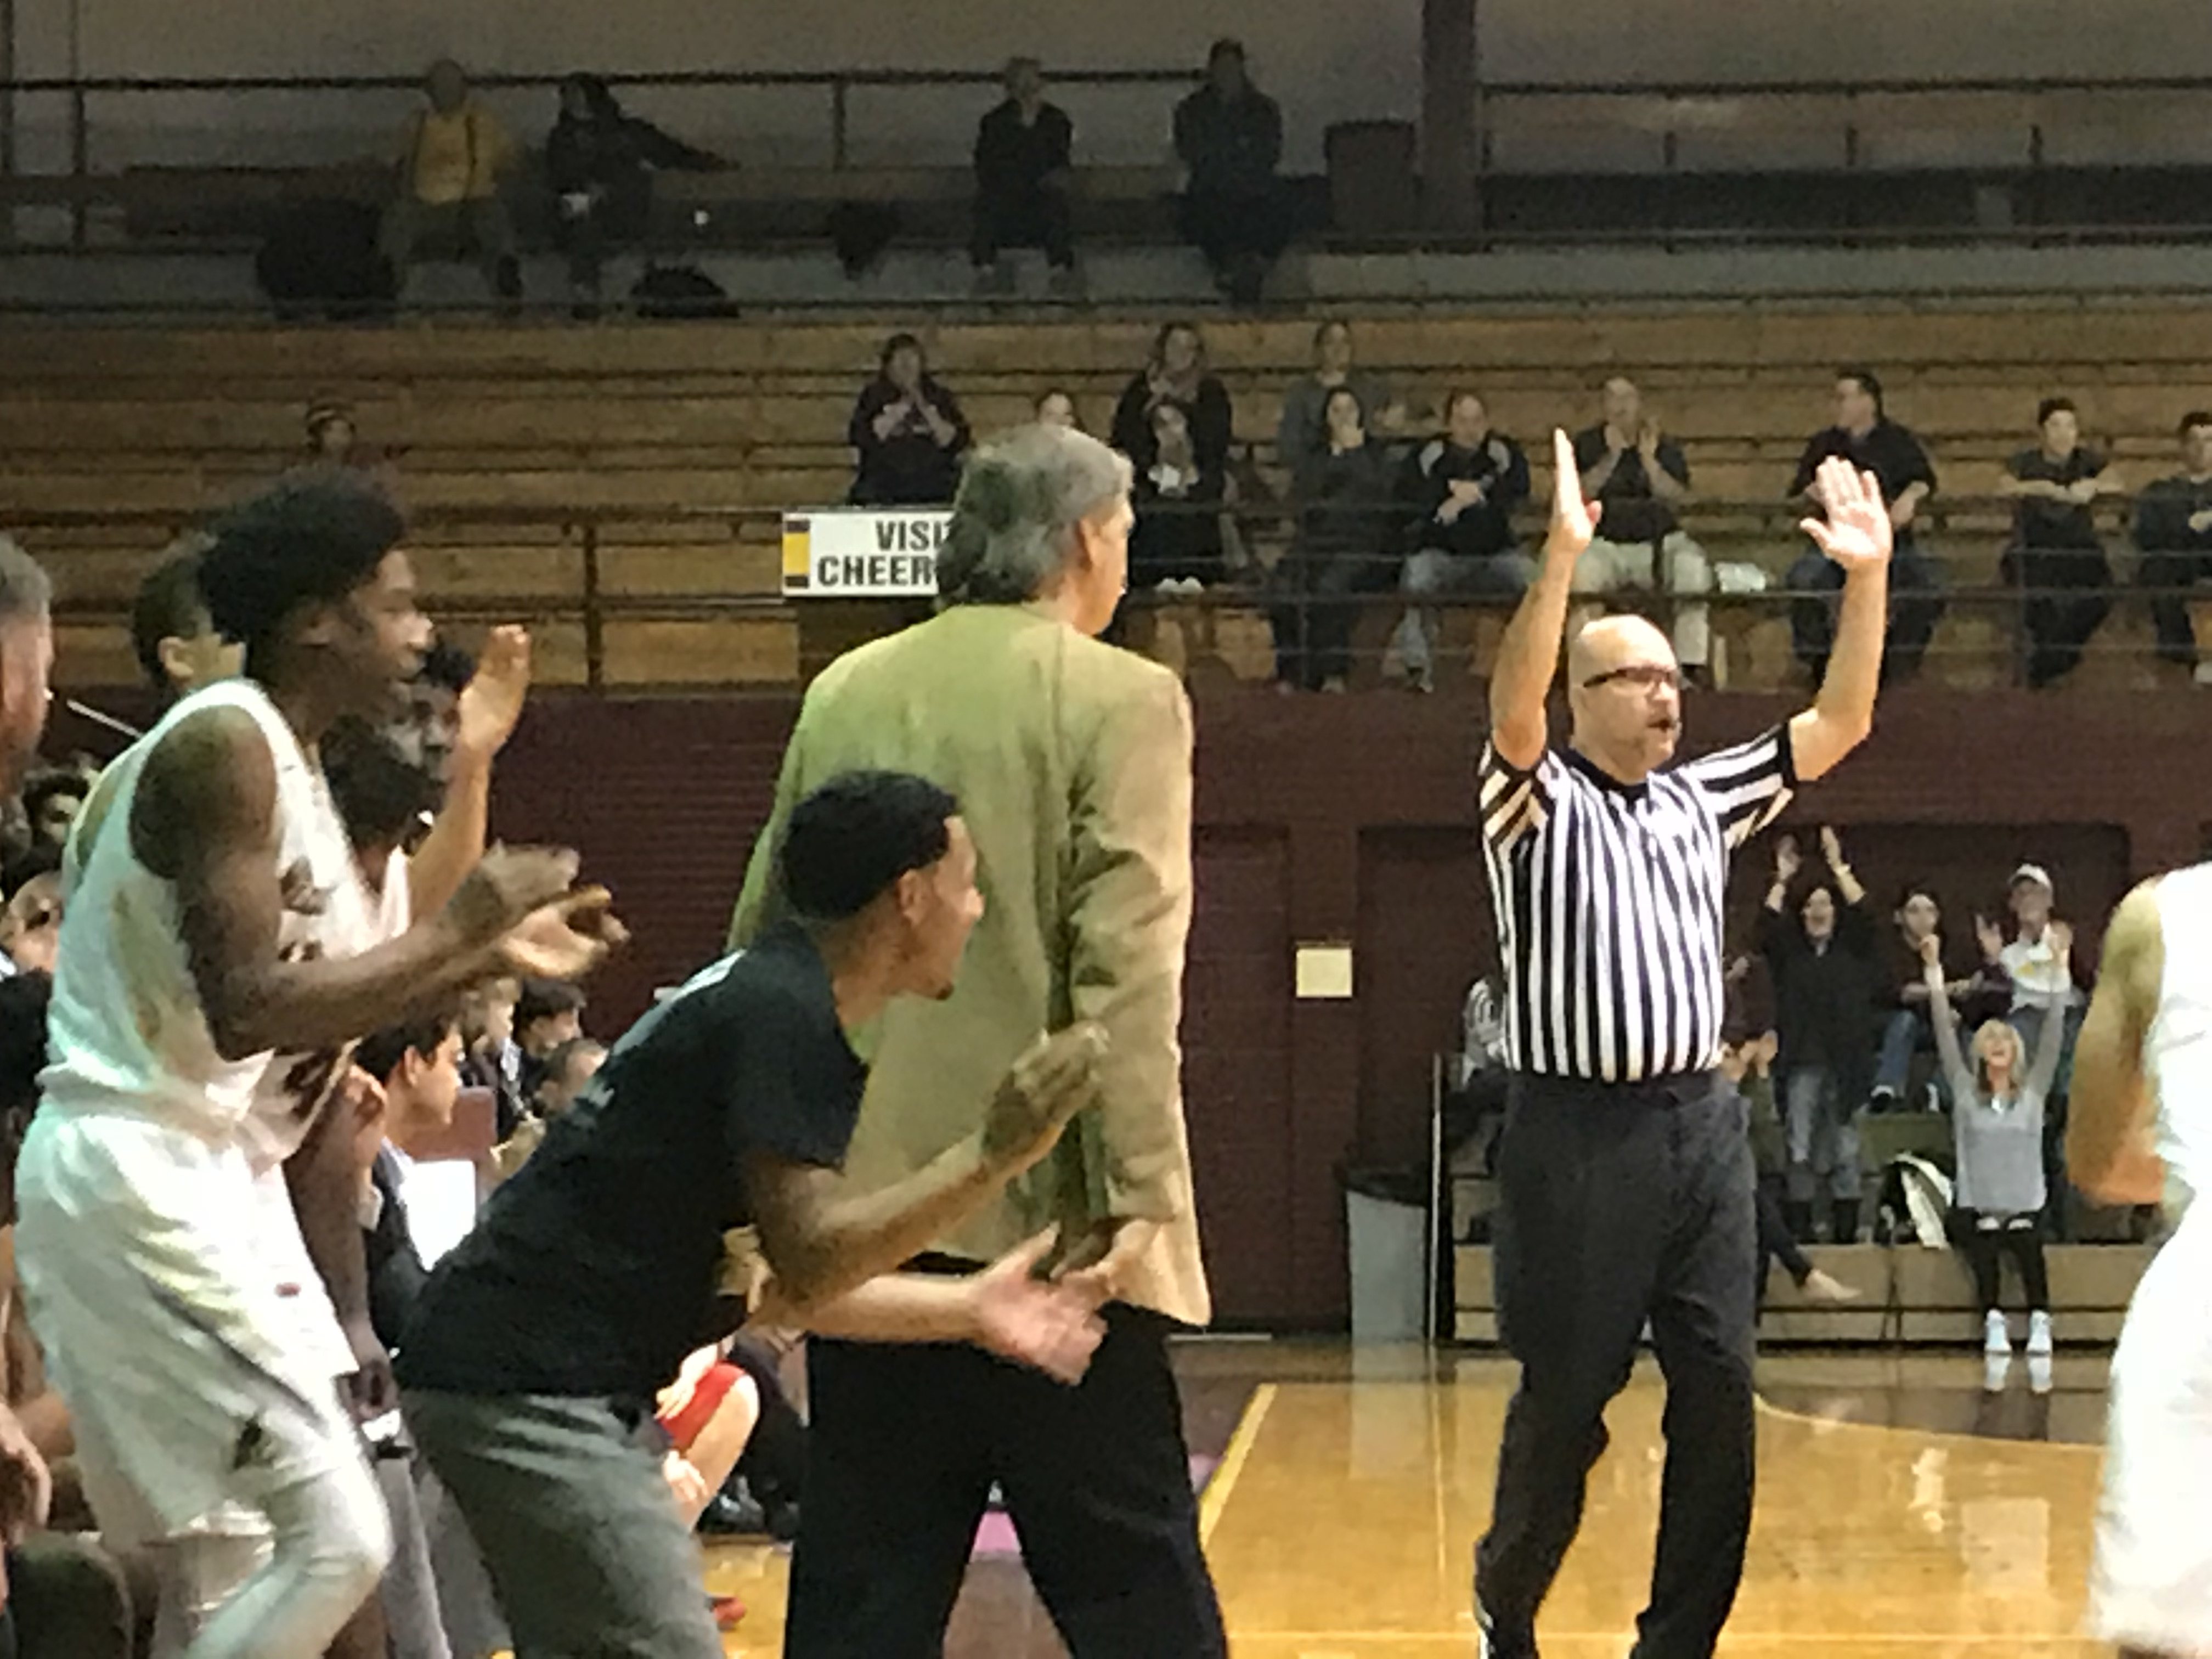 Mishawaka's Coach Hecklinski on a Mission to Save Lives (MSN Video Story)